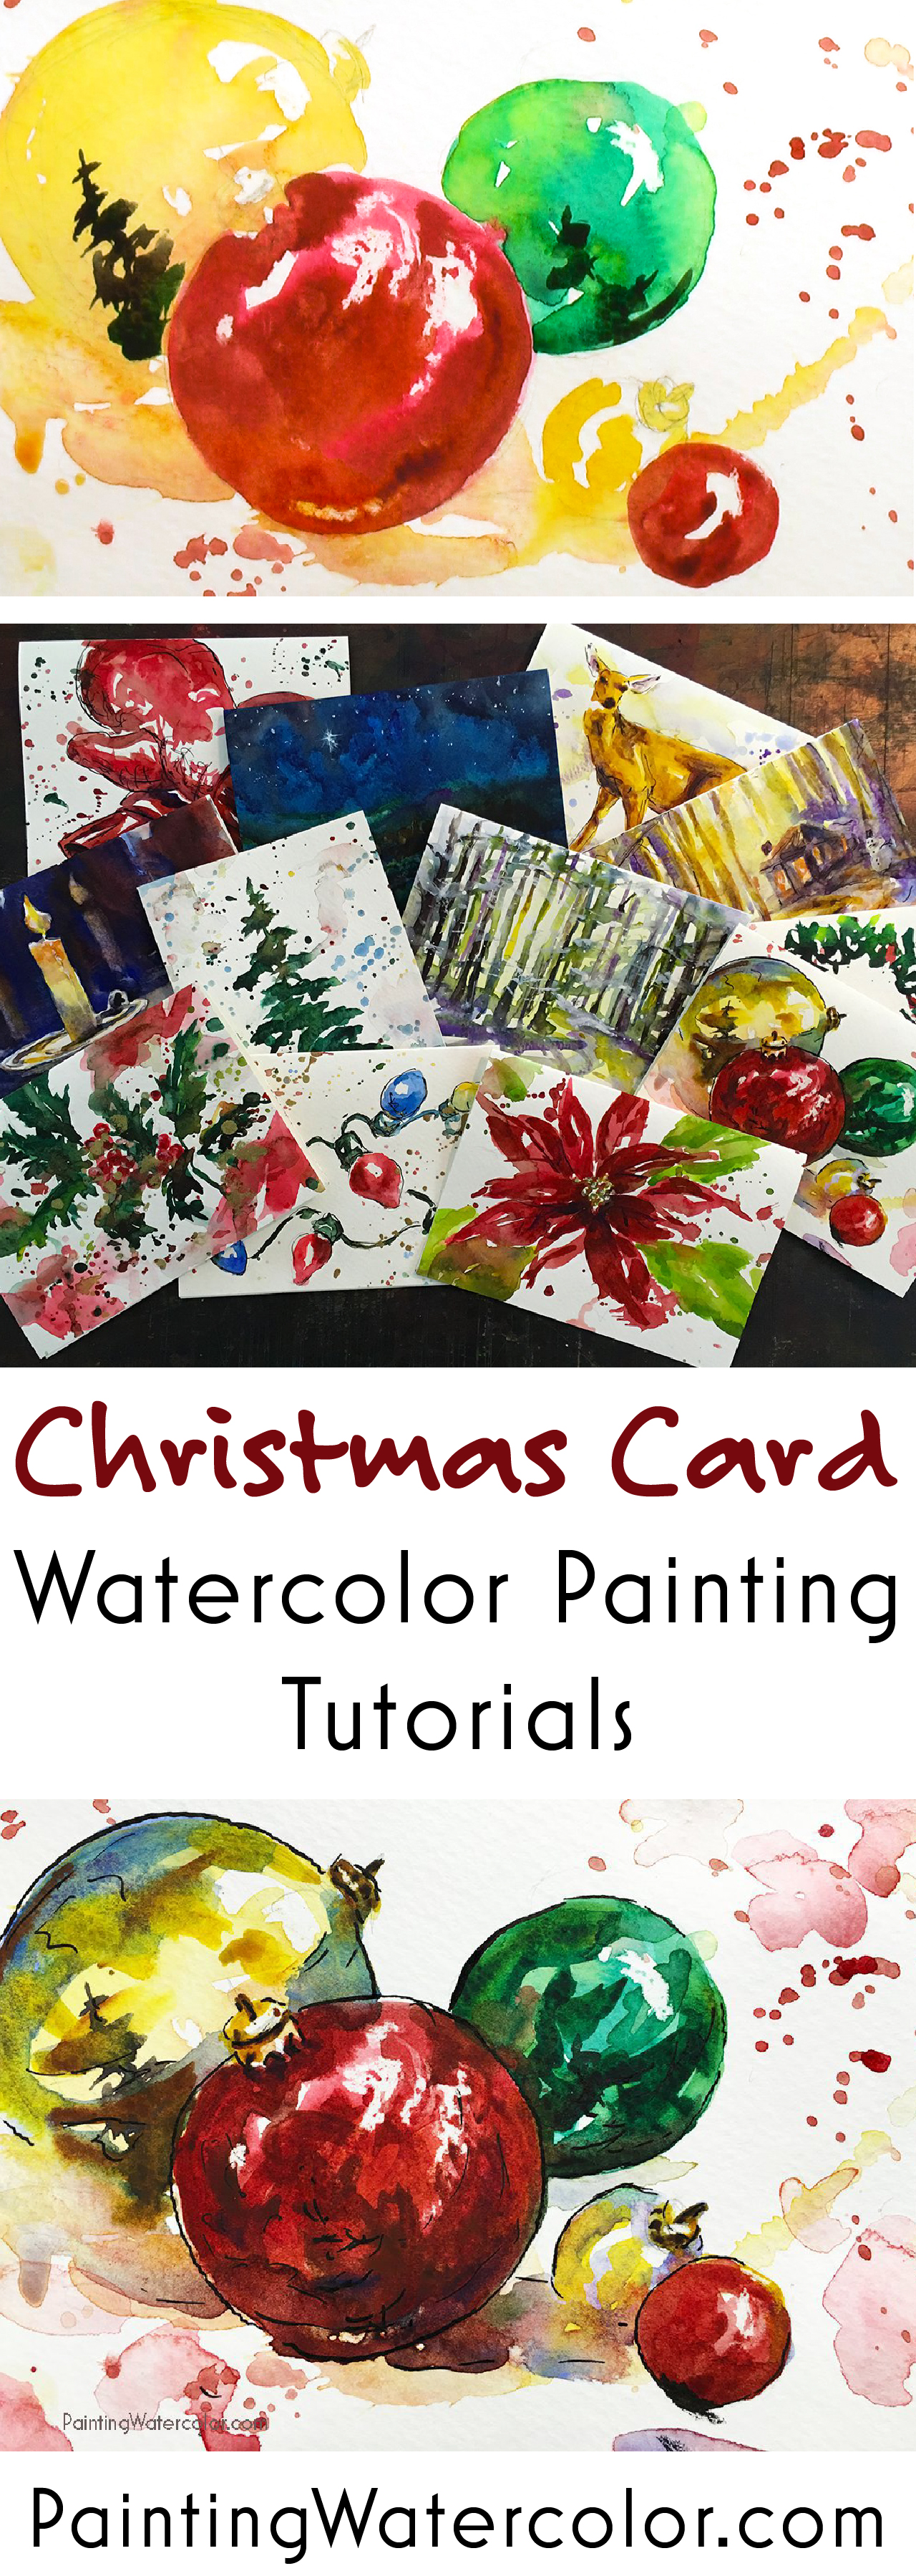 Paint beautiful Christmas cards for your family and friends! Here are some lovely ornaments for your Christmas cards. Youtube video painting tutorial!